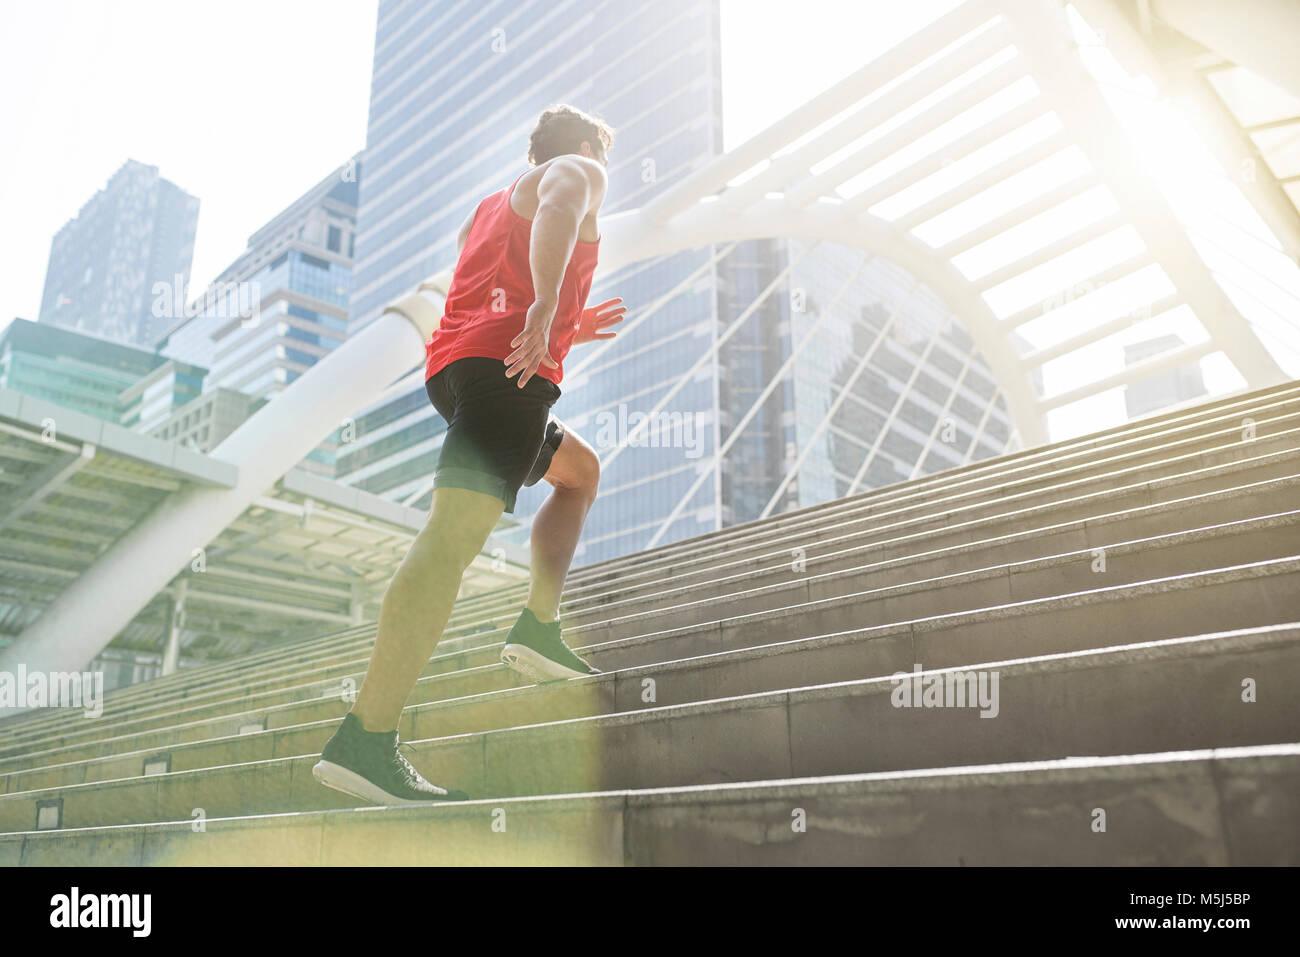 Man in red fitness shirt running upstairs in the city - Stock Image